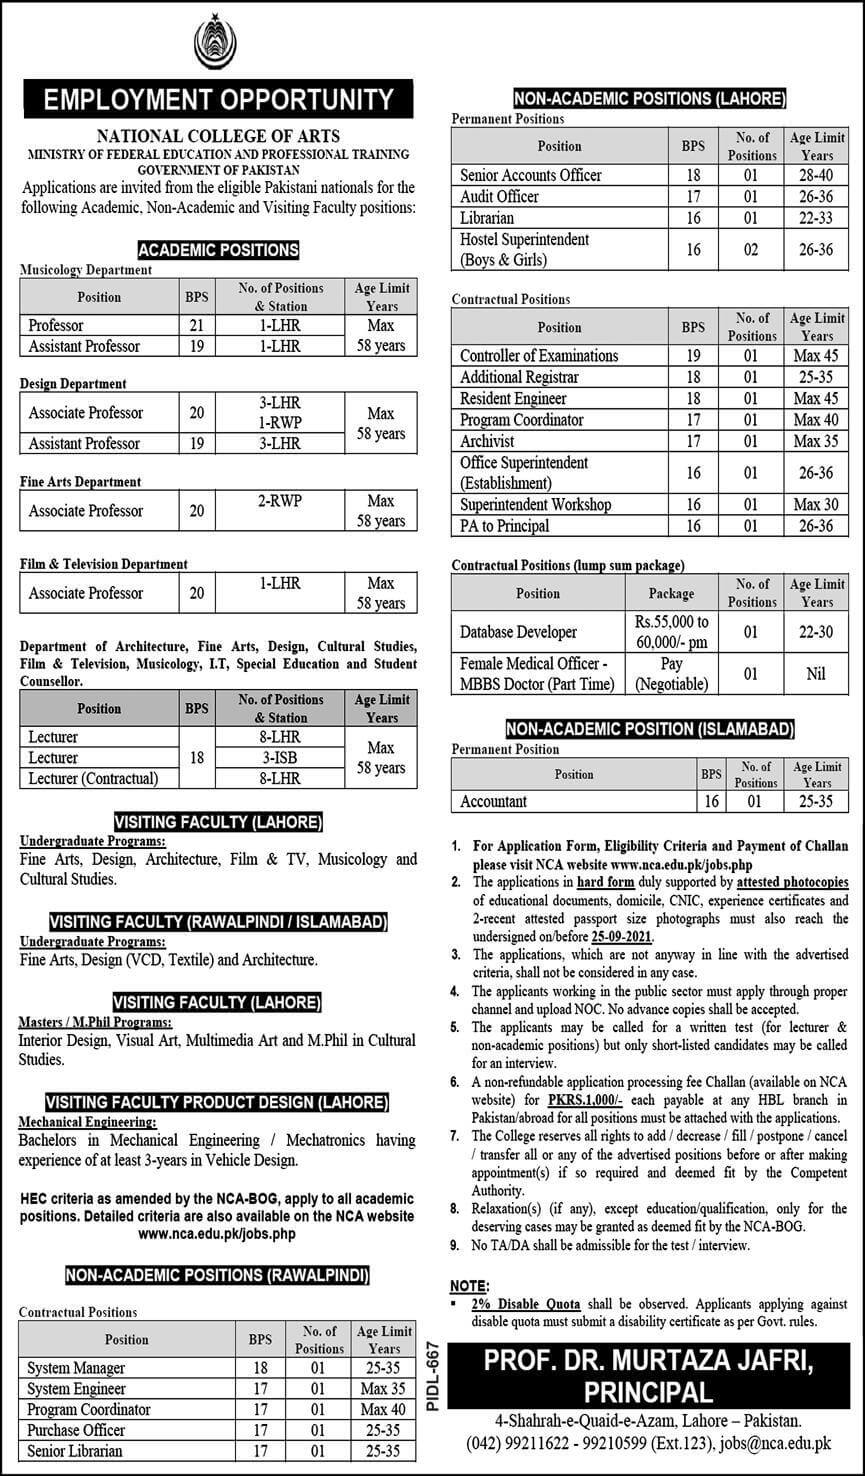 Today Govt jobs in Pakistan For Teachers 2021 At National College of Arts NCA